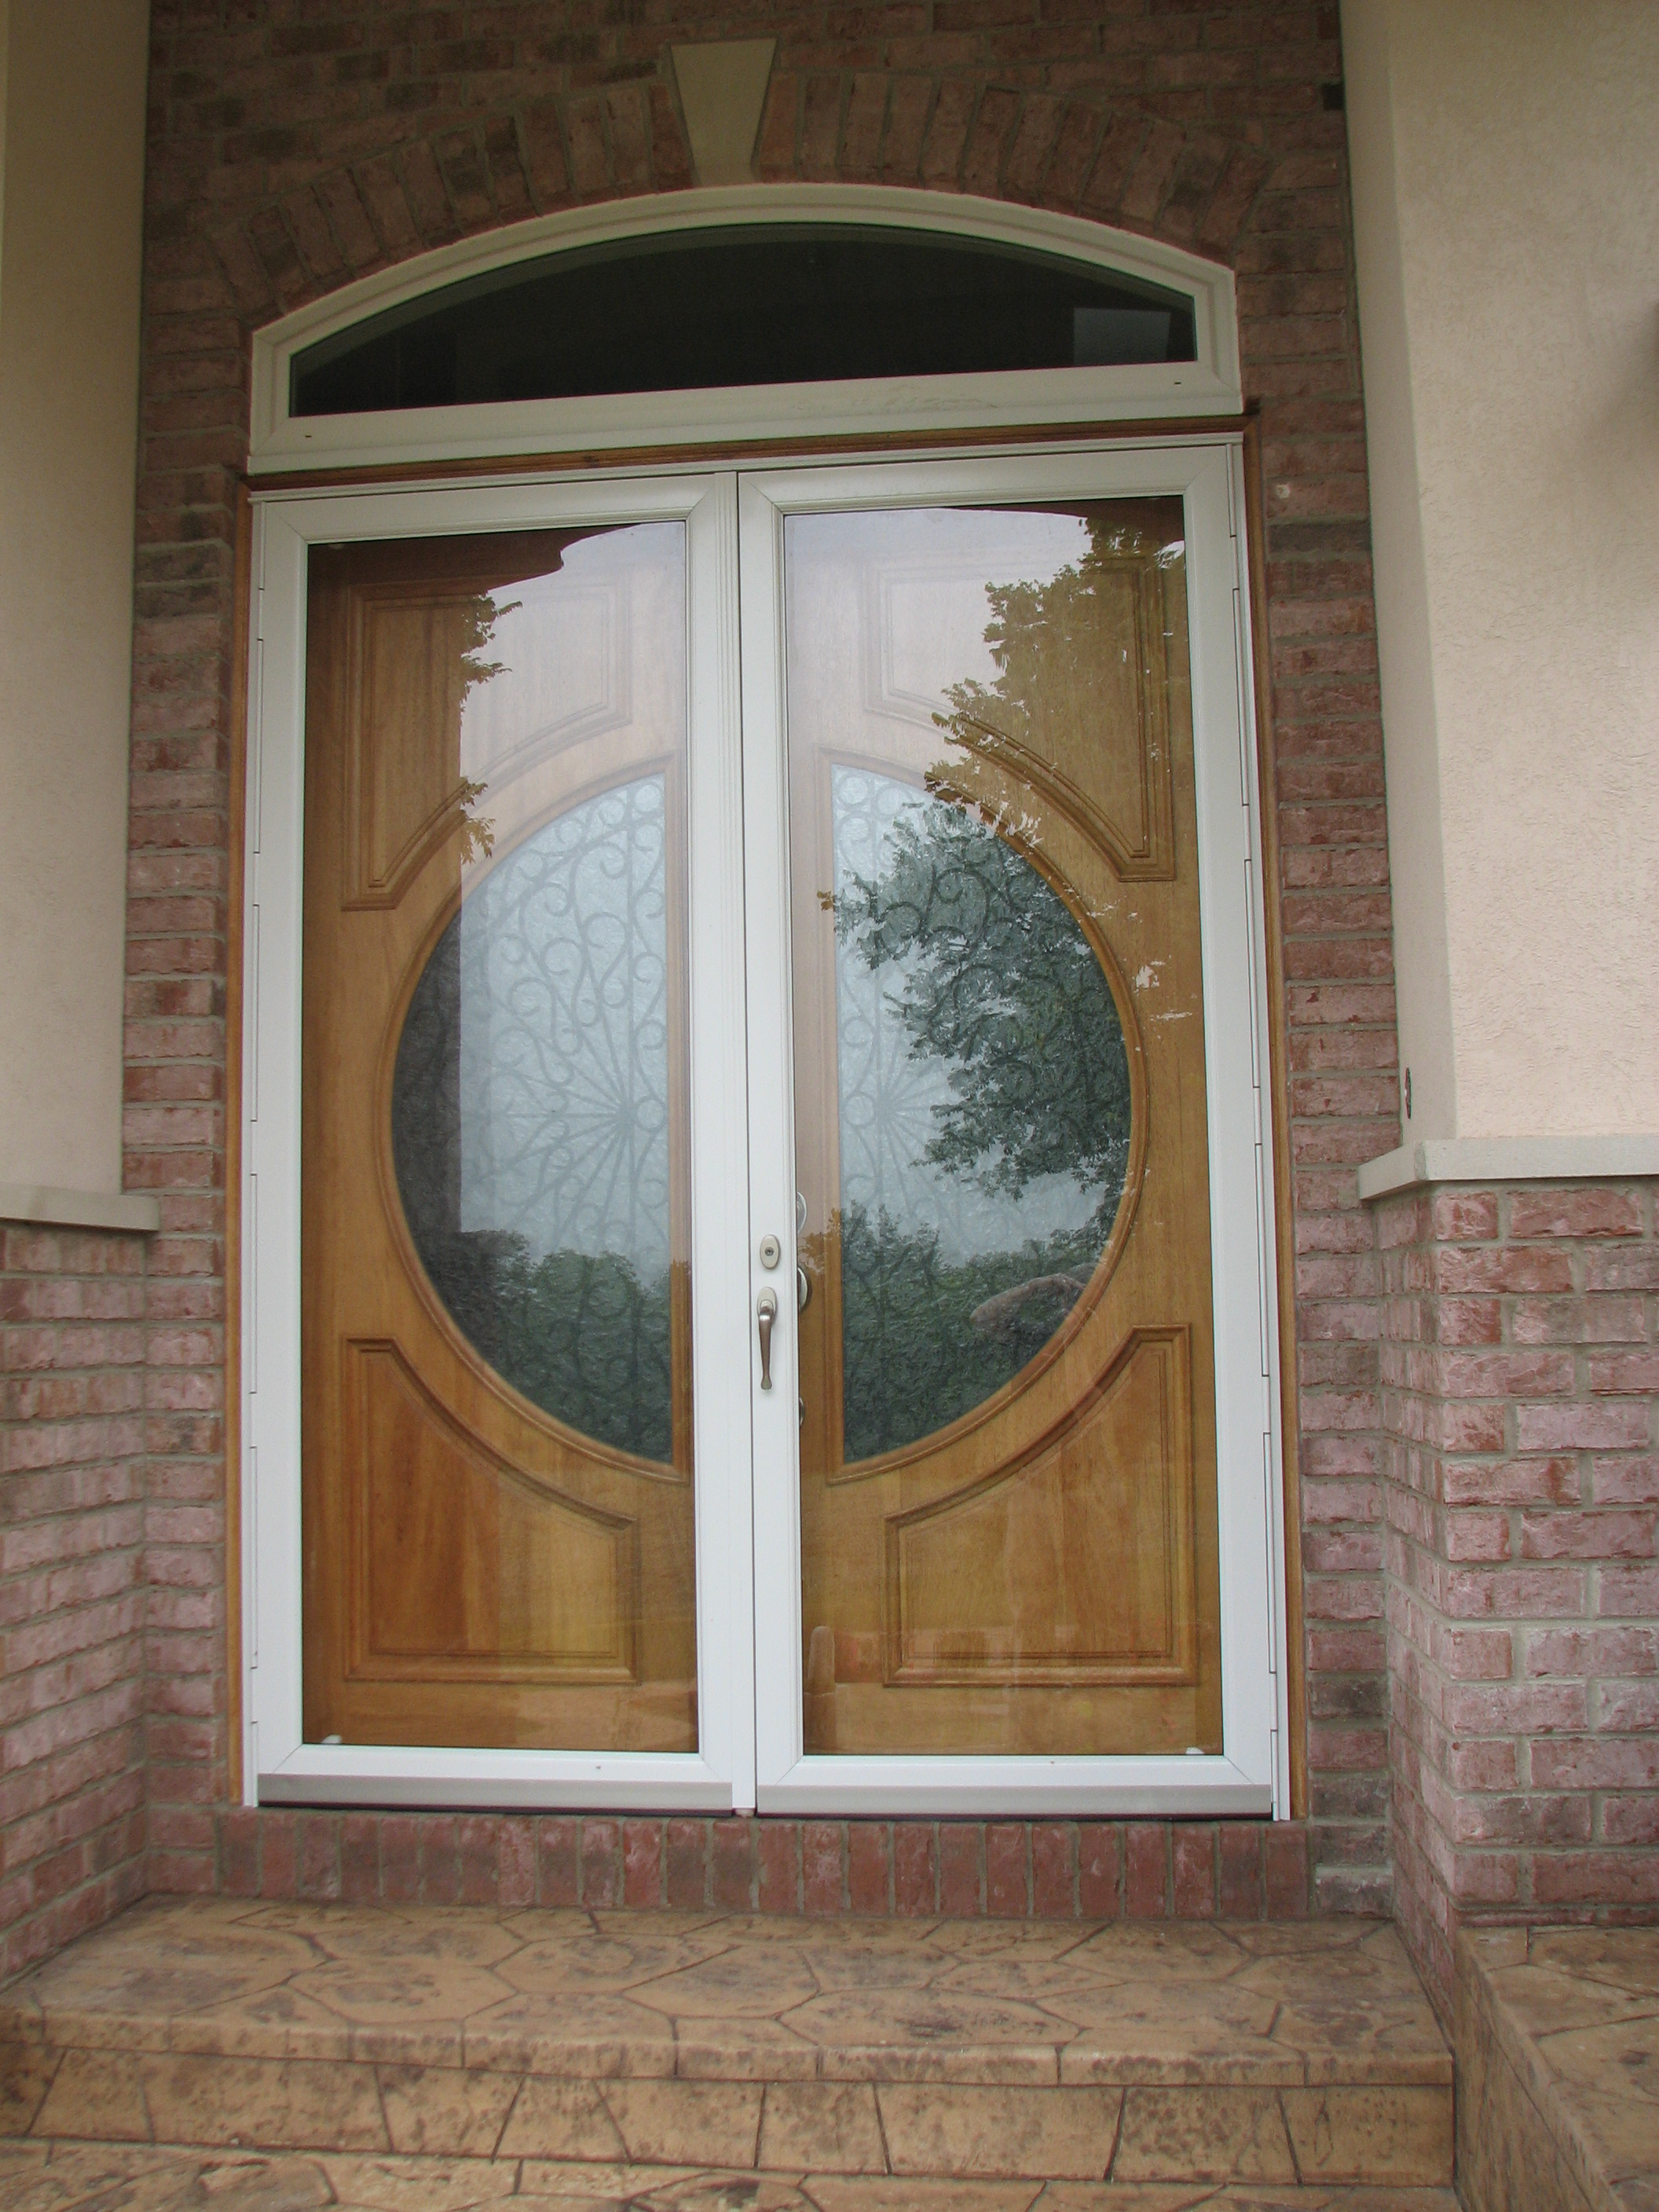 Styleline thermal vue storm and screen doors for French style storm doors